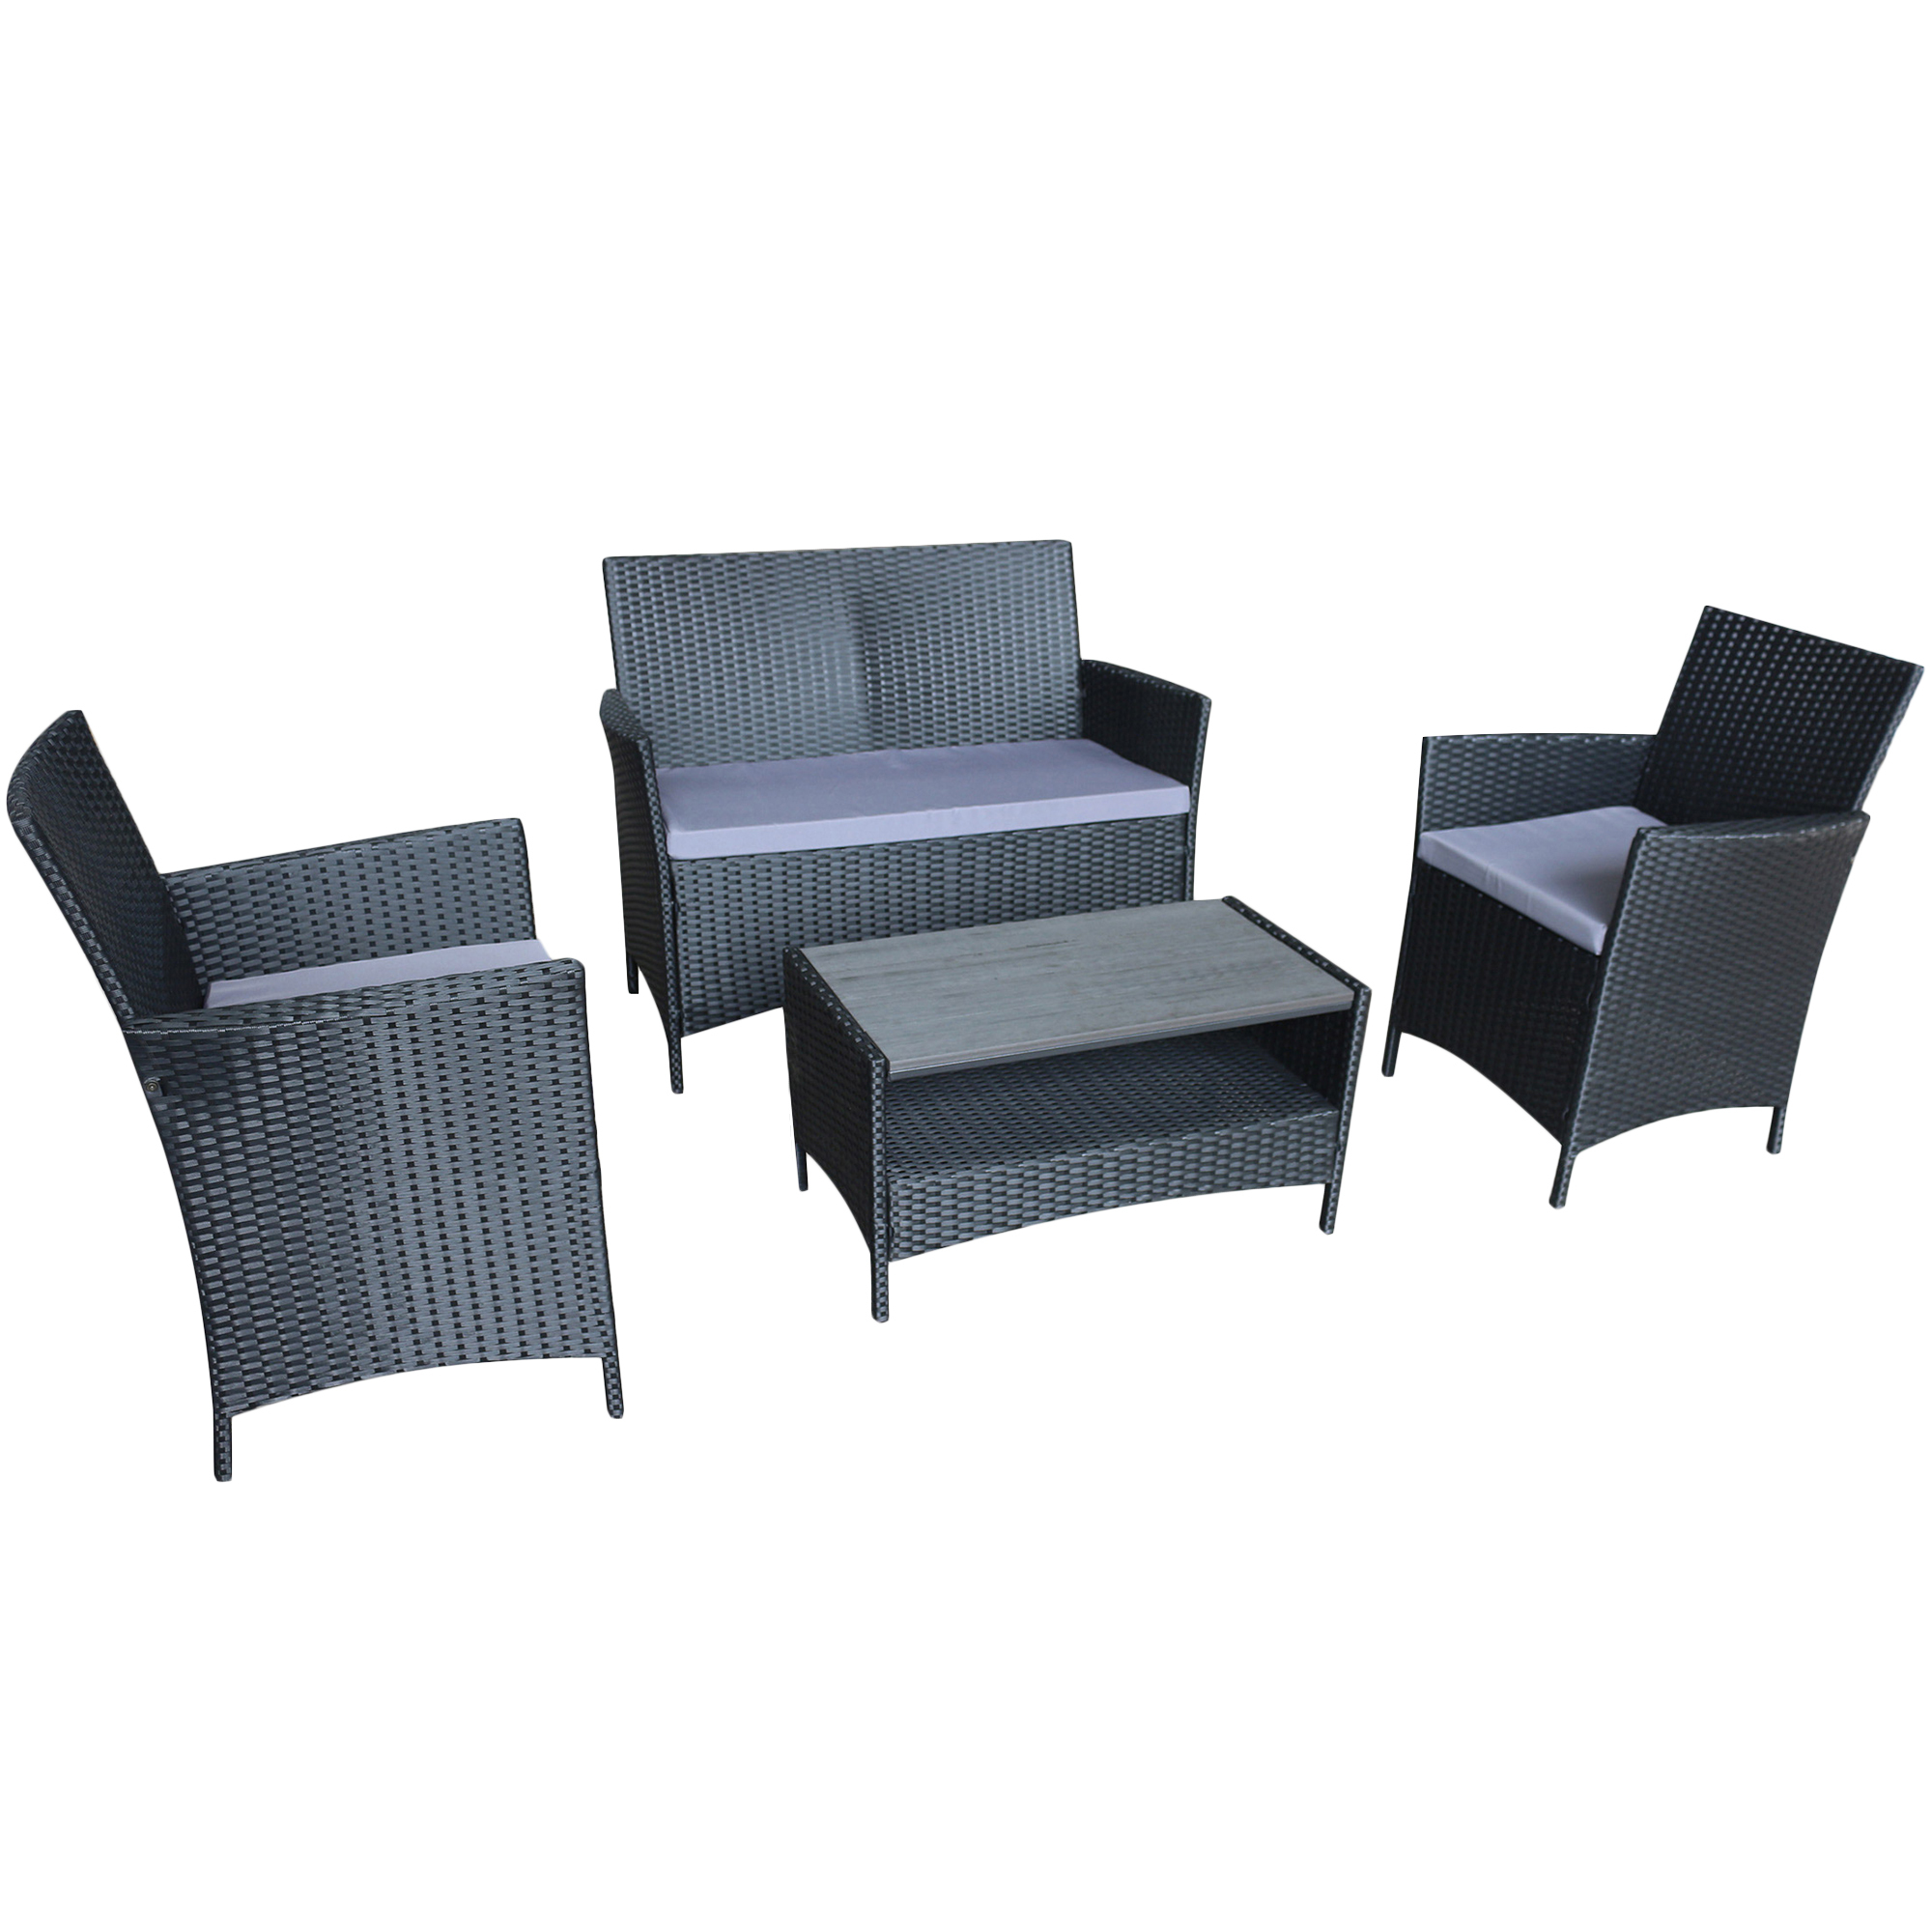 4 Seater Ravello Polywood Outdoor Sofa Set Temple Webster